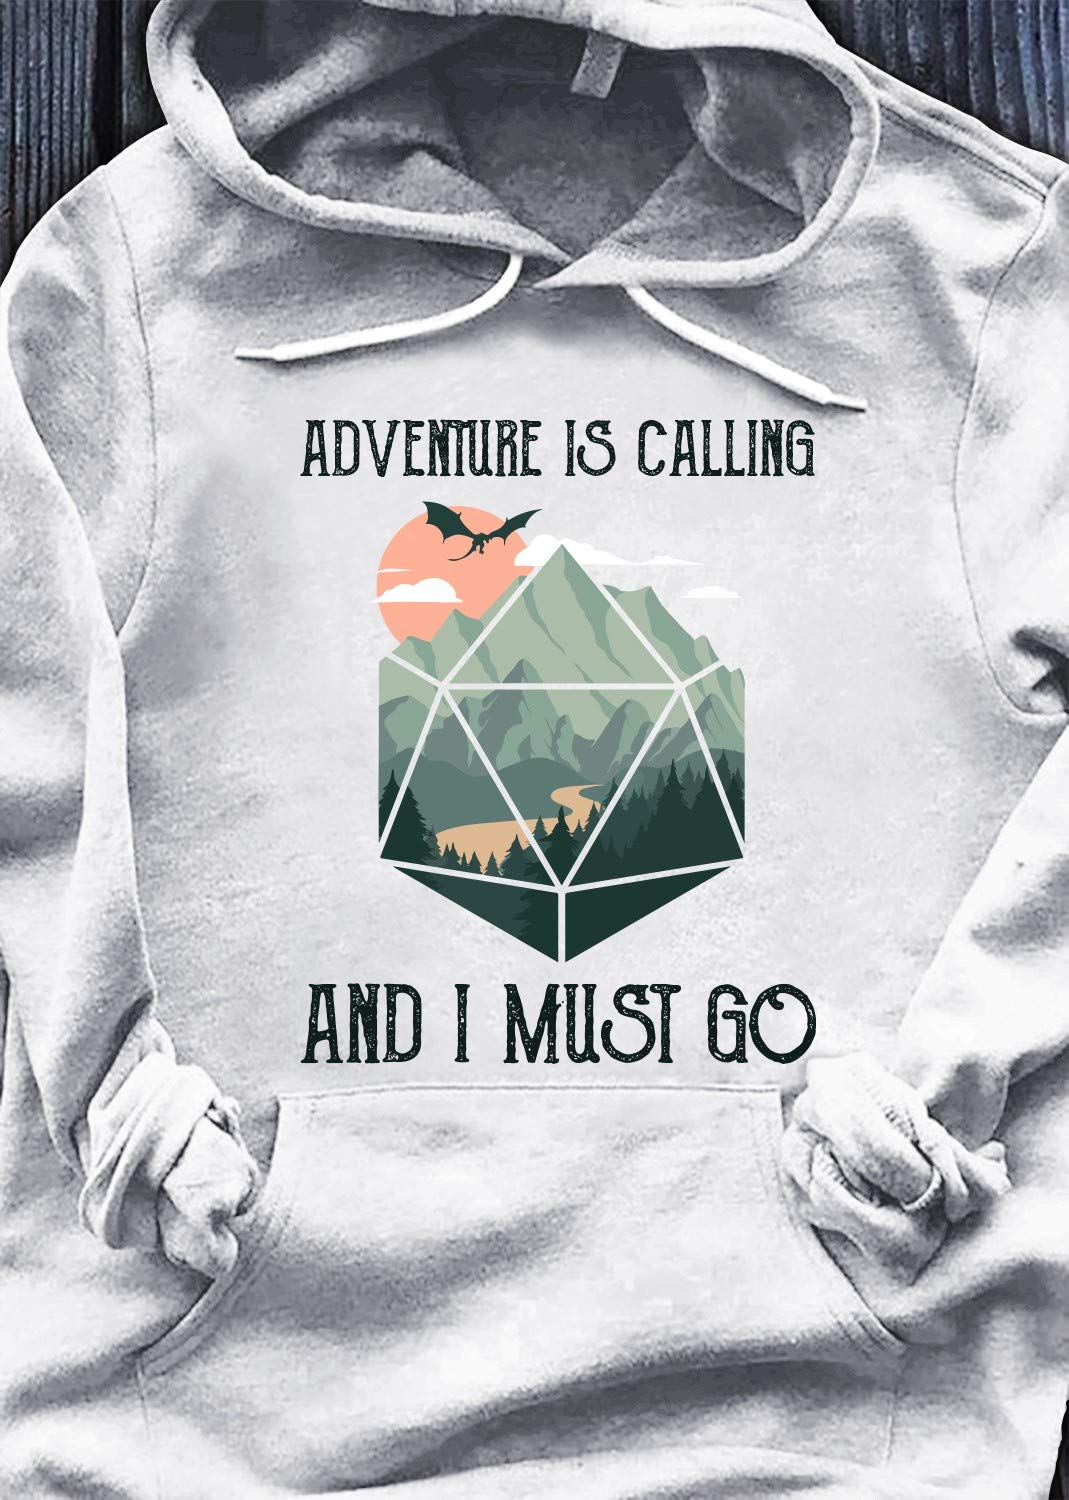 Adventure Is A Calling And All stores are sold El Paso Mall I Birthday Go - Camping Hoodie Must